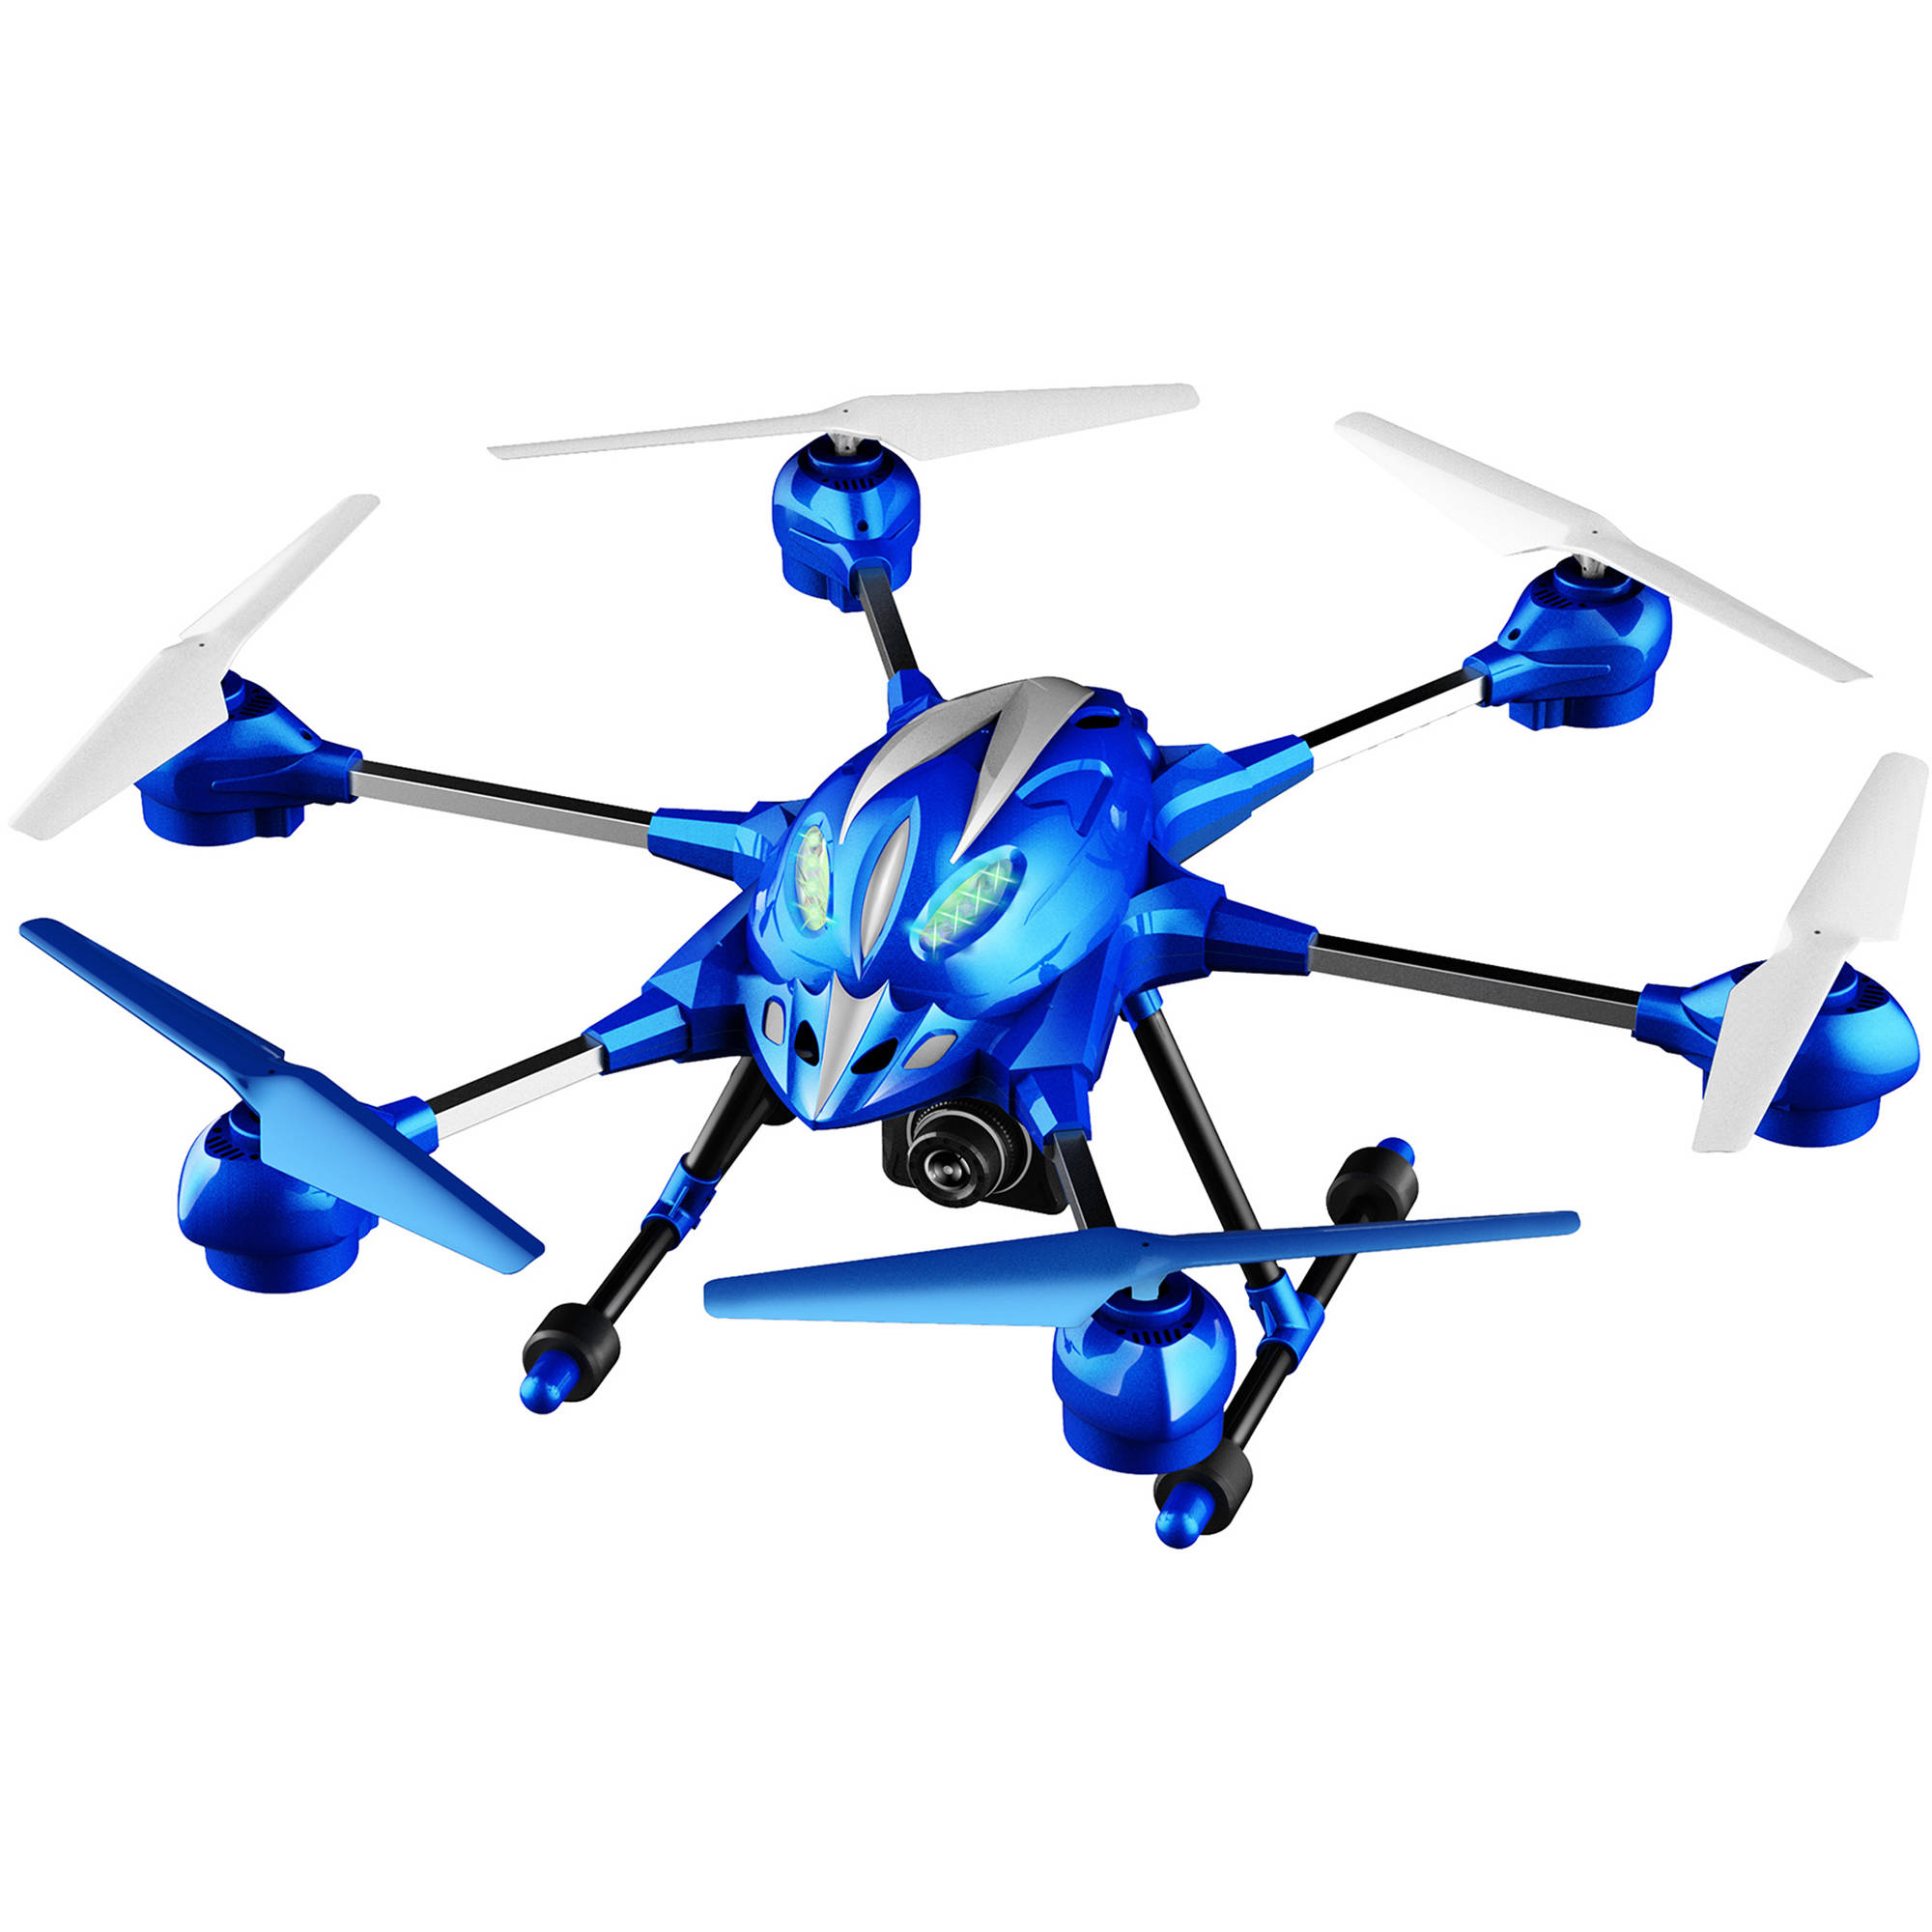 Riviera RC Pathfinder 5 8 GHz FPV Hexacopter Drone (Large, Blue)